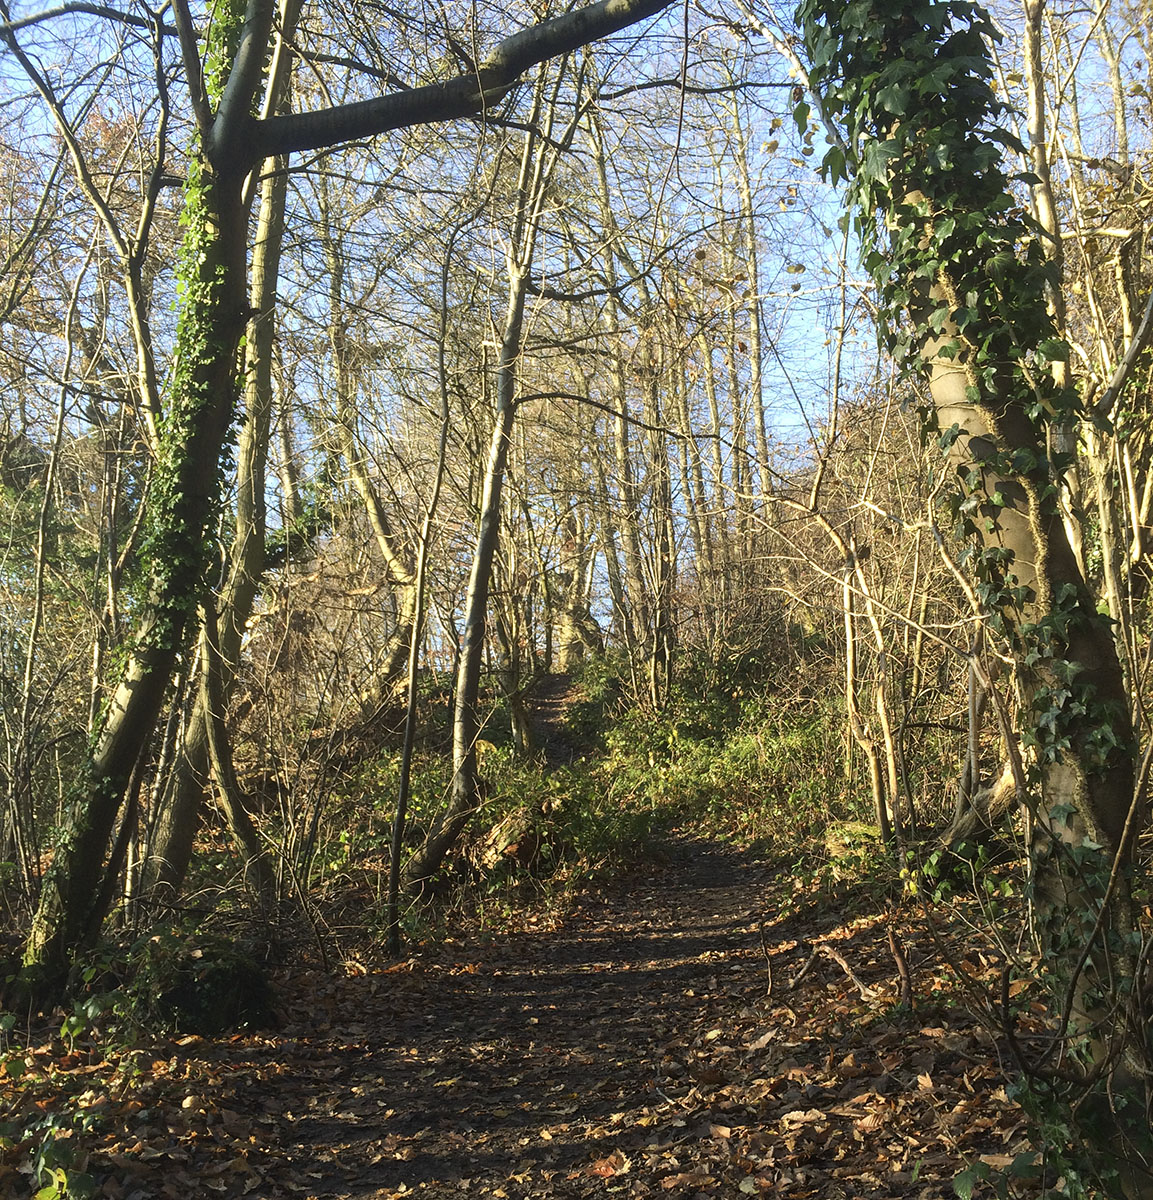 Looking up along the path towards One Tree Hill, 11 December 2012.